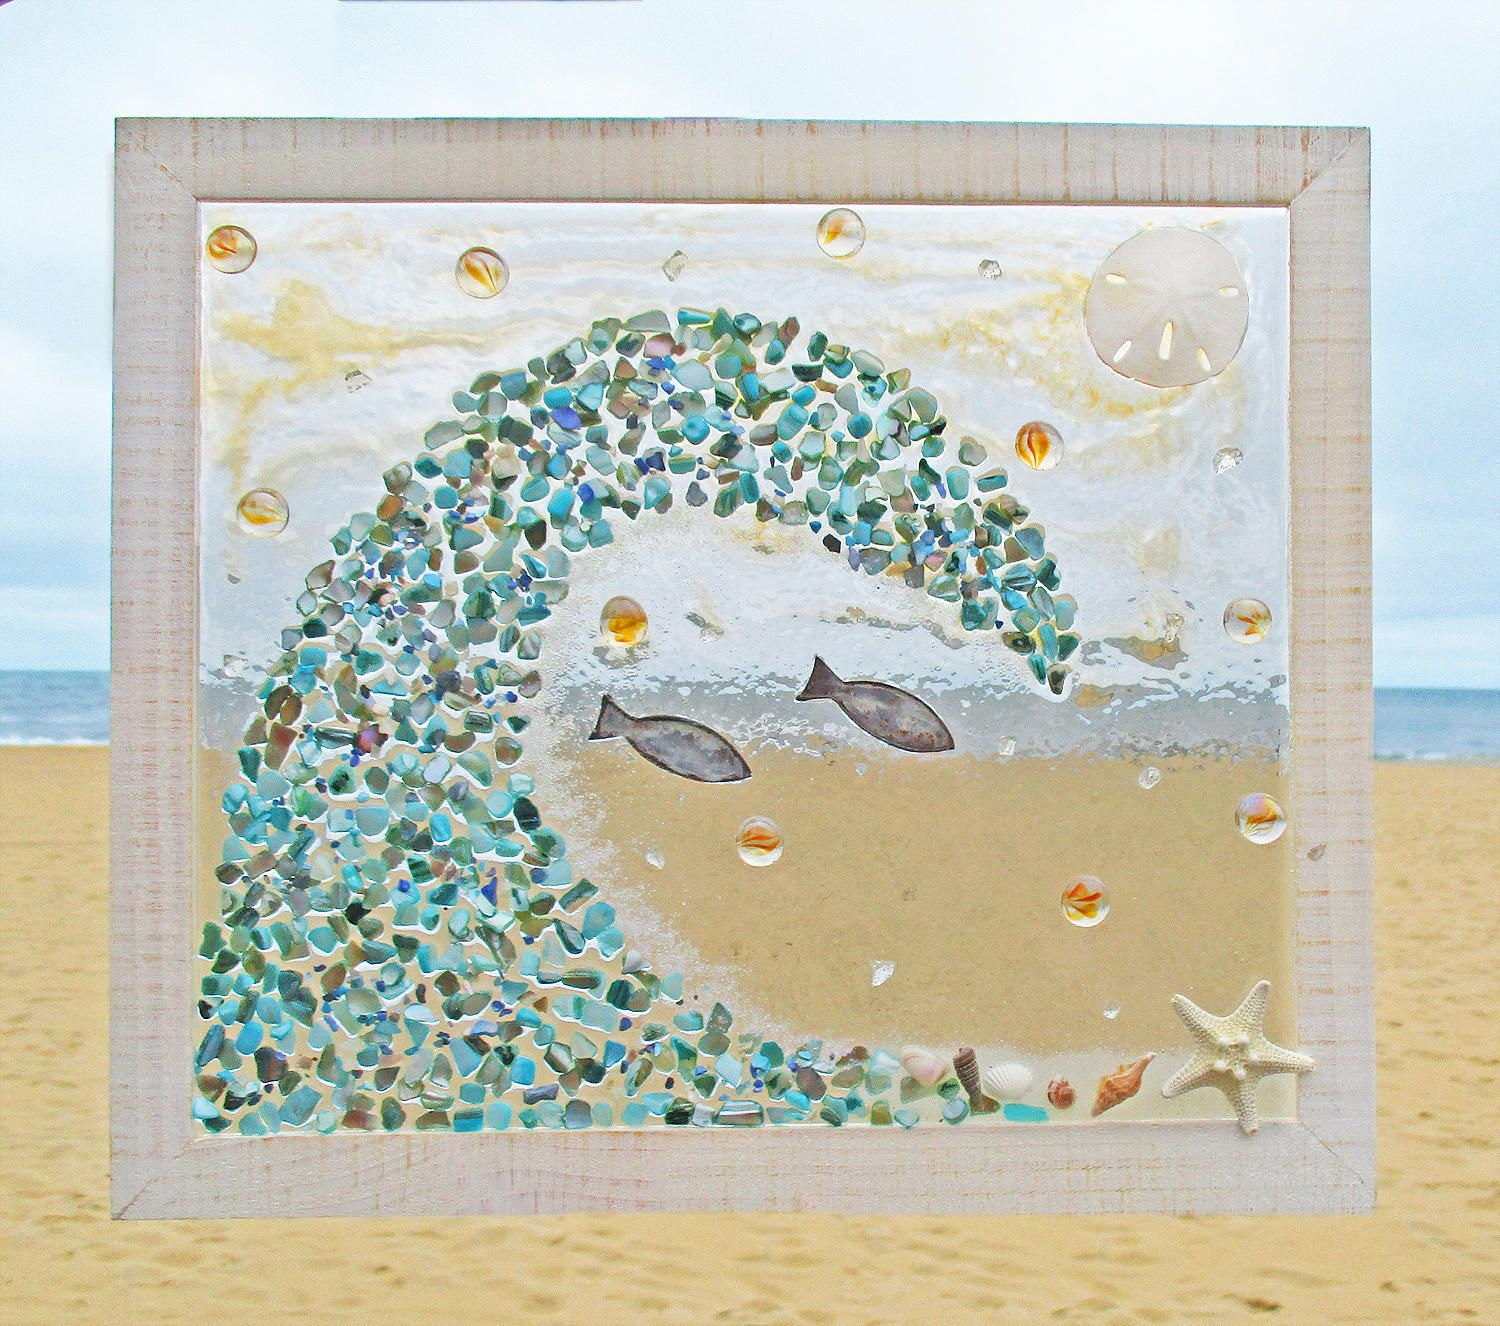 Unique beach window art by luminosities sunny beach scene with an unique beach window art by luminosities sunny beach scene with an abalone shell wave and voltagebd Images